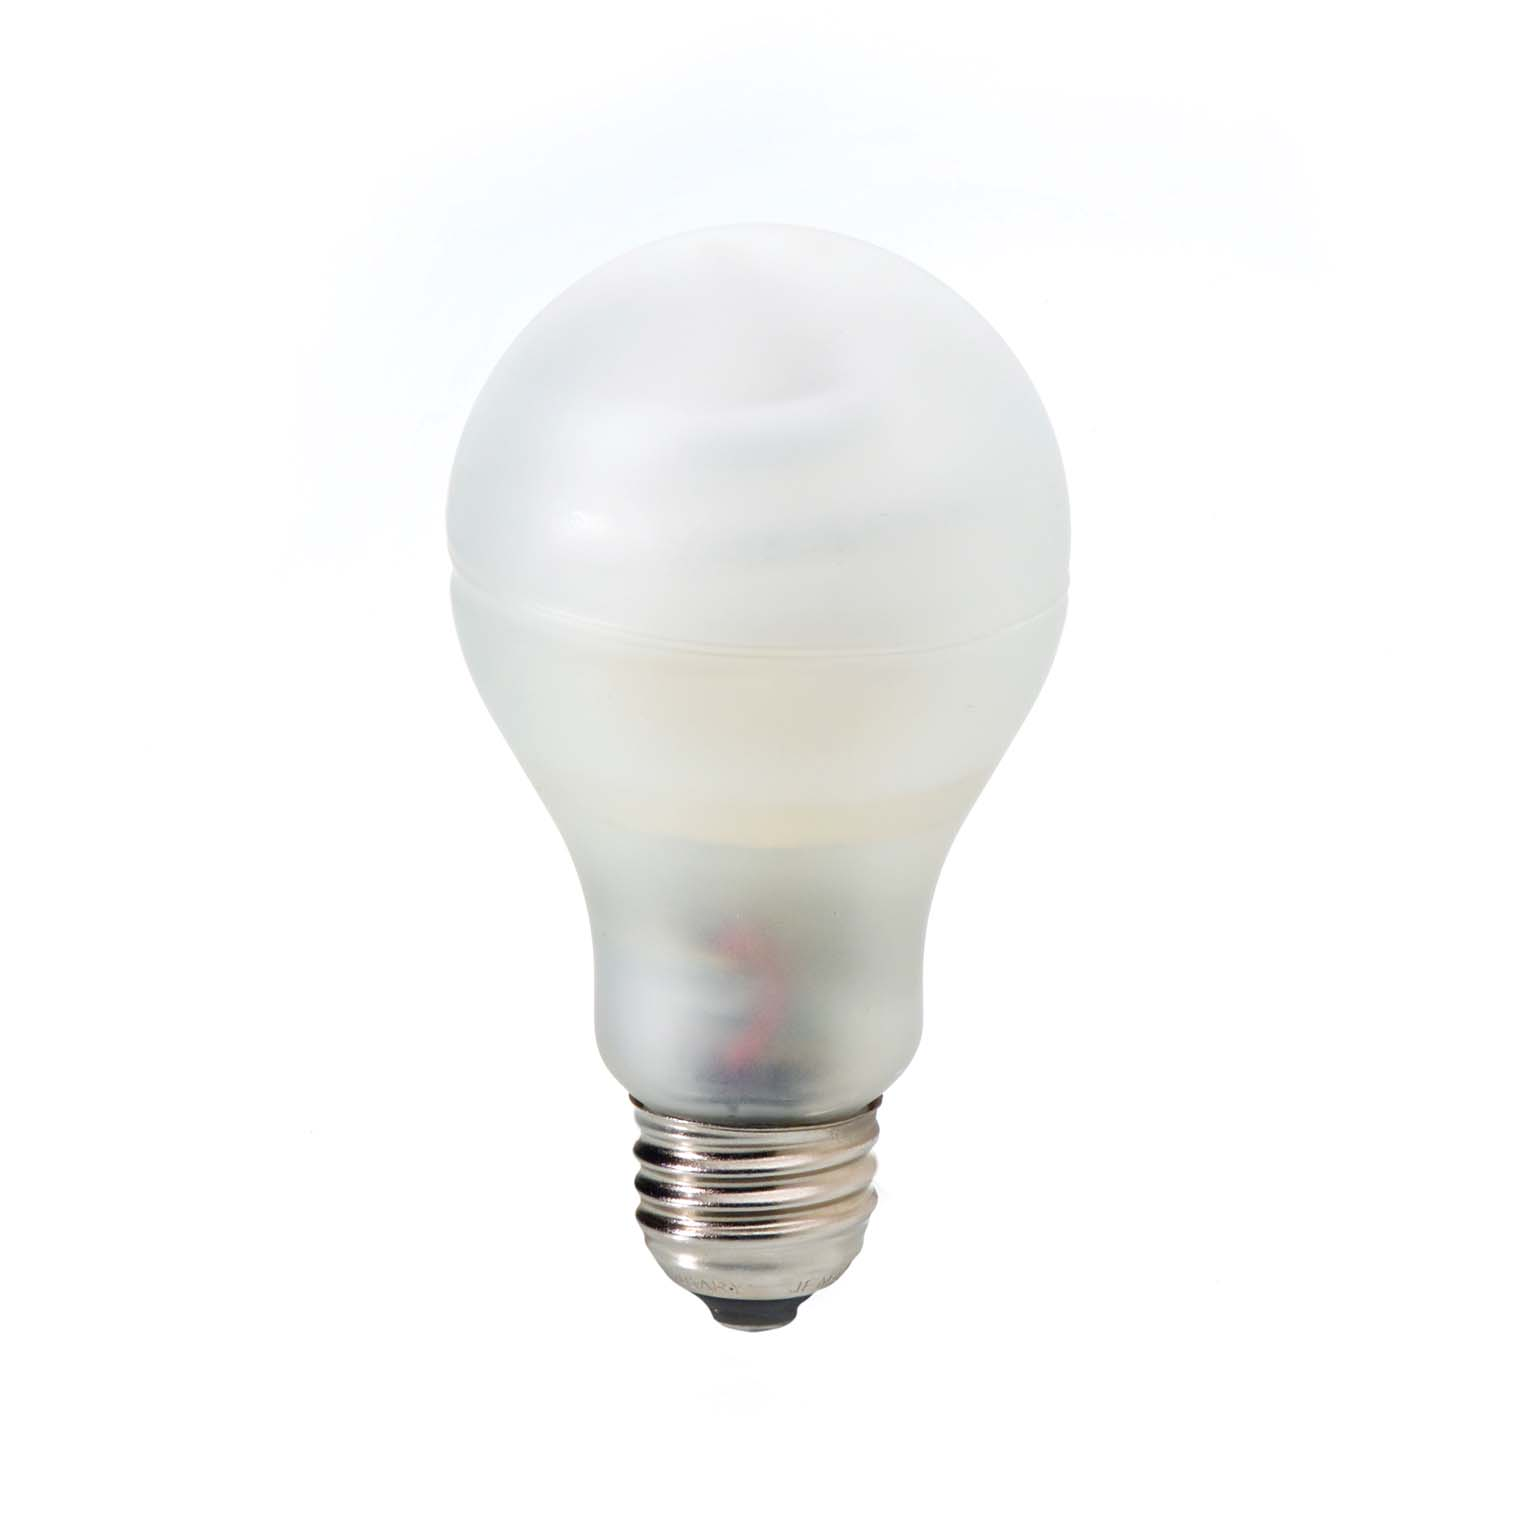 Ge Study Consumers Buy Energy Efficient Lighting For Benefits Not Looming Federal Efficiency